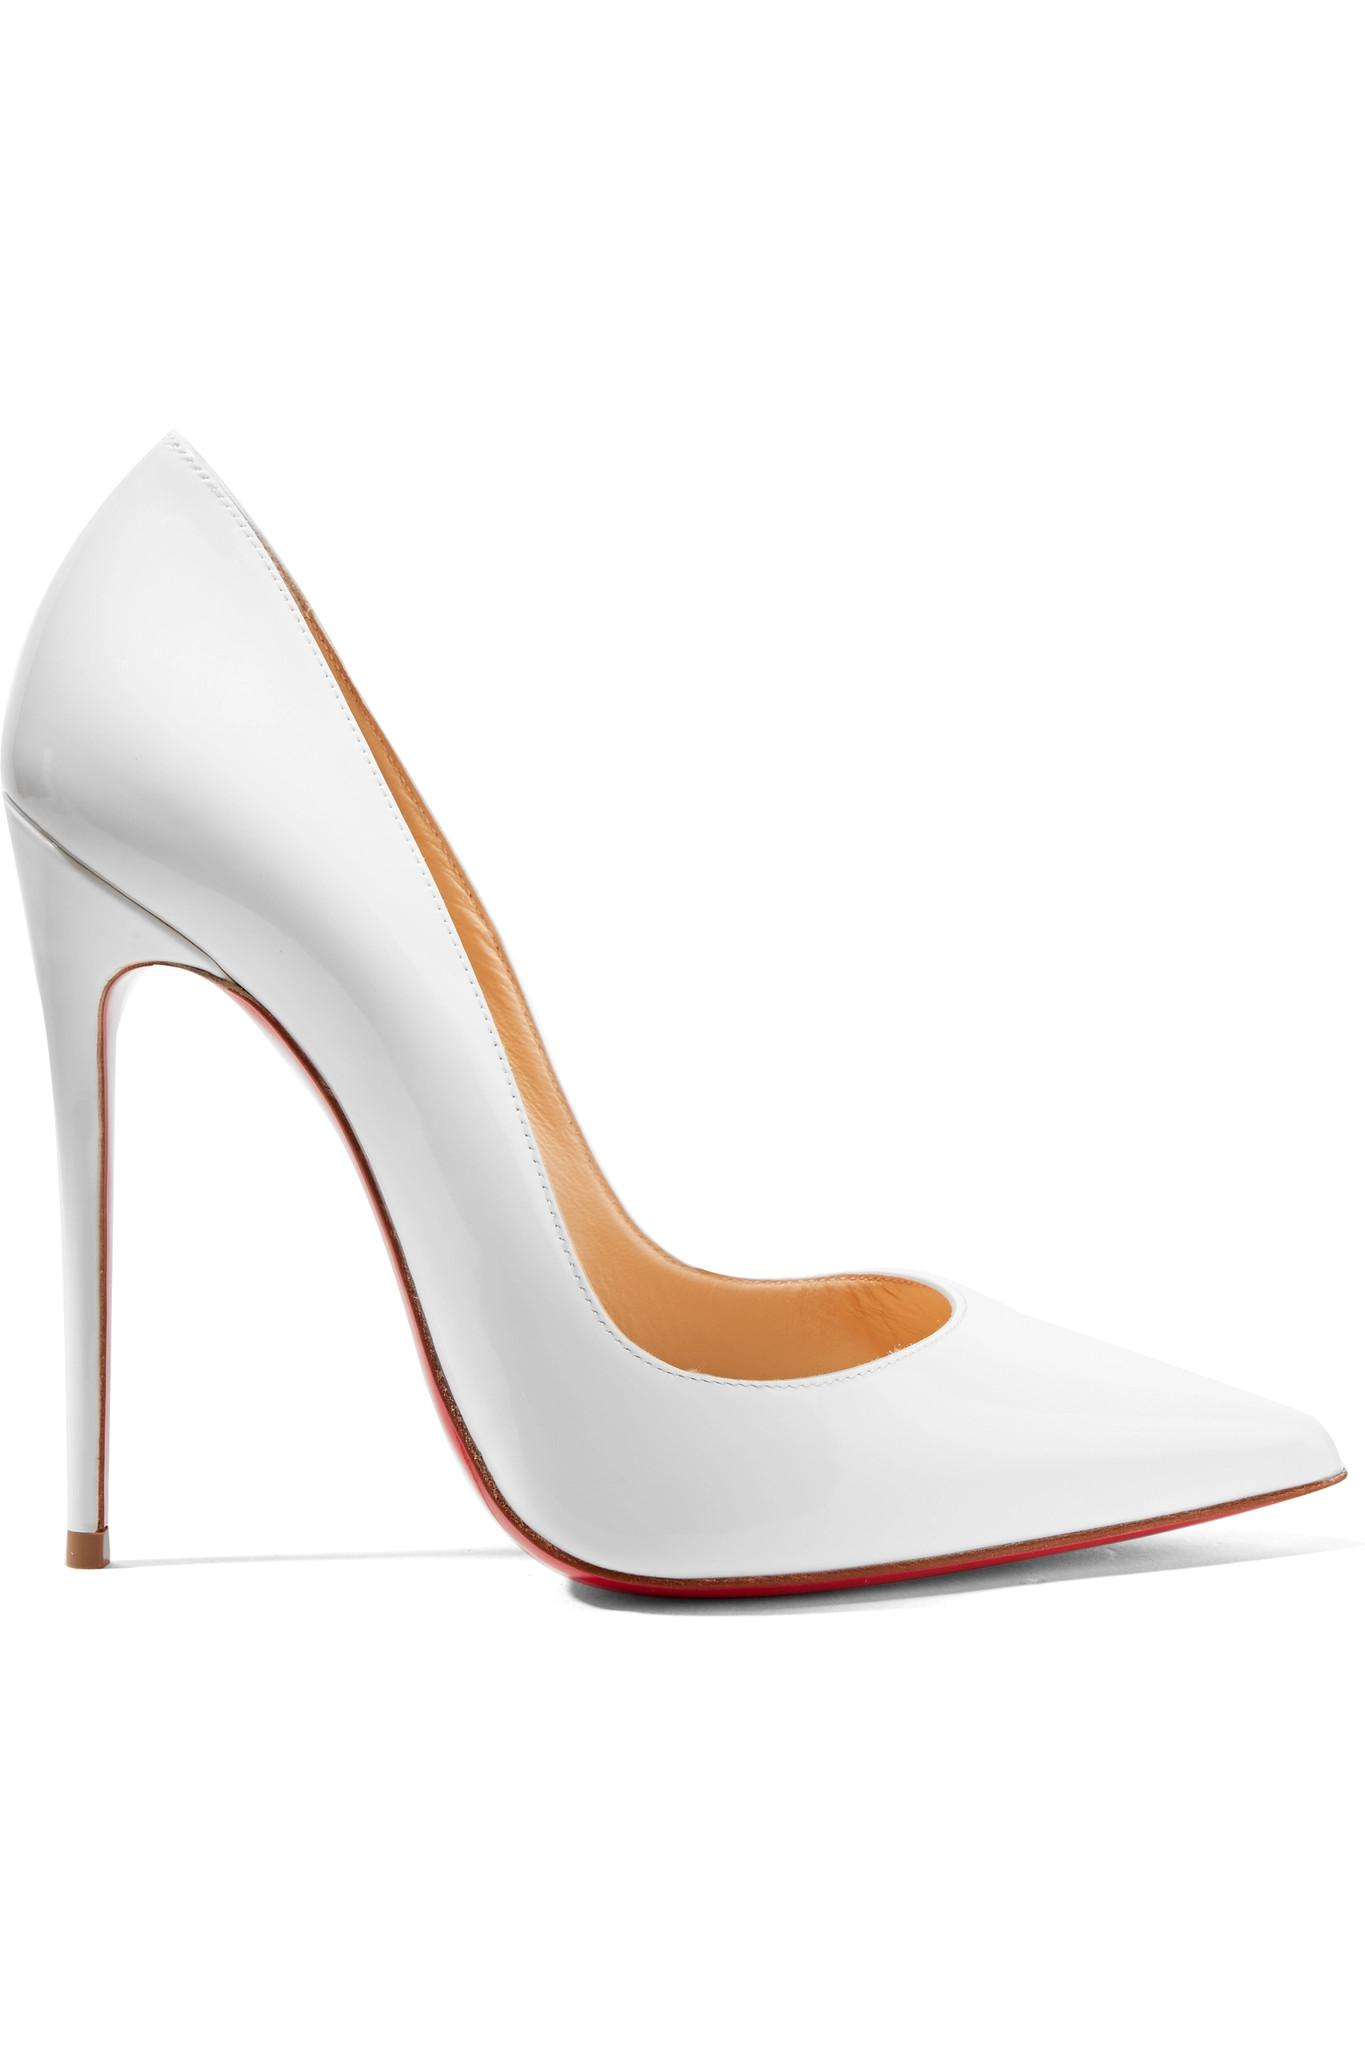 2cb720ca8 Gallery. Previously sold at: NET-A-PORTER · Women's Christian Louboutin So  Kate Heels